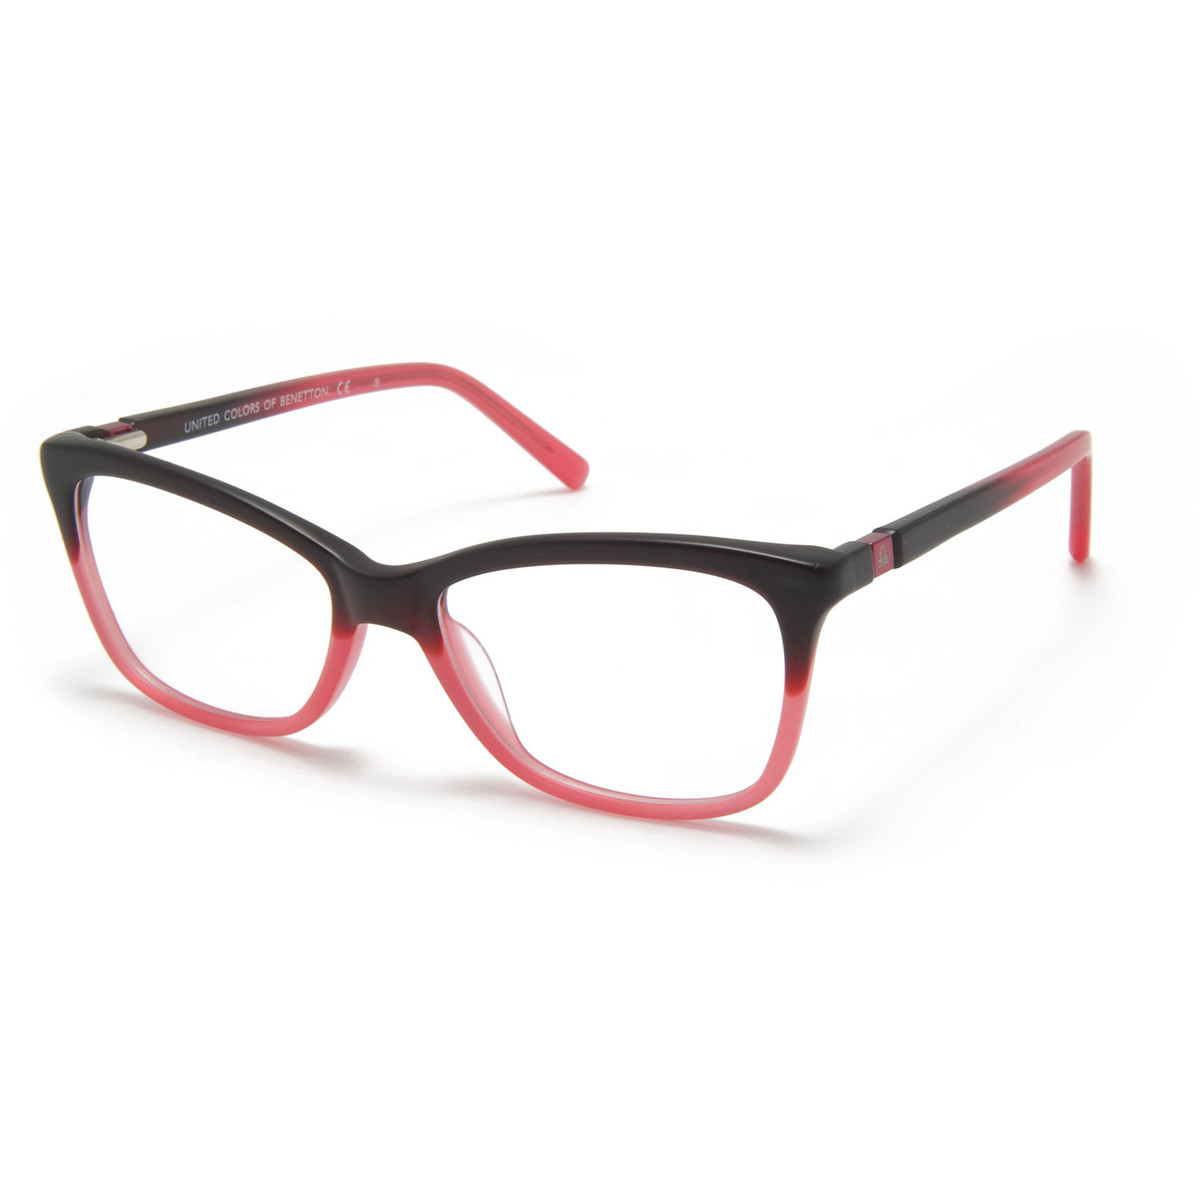 United Colors of Benetton Rame ochelari vedere dama UNITED COLORS OF BENETTON BN250V02